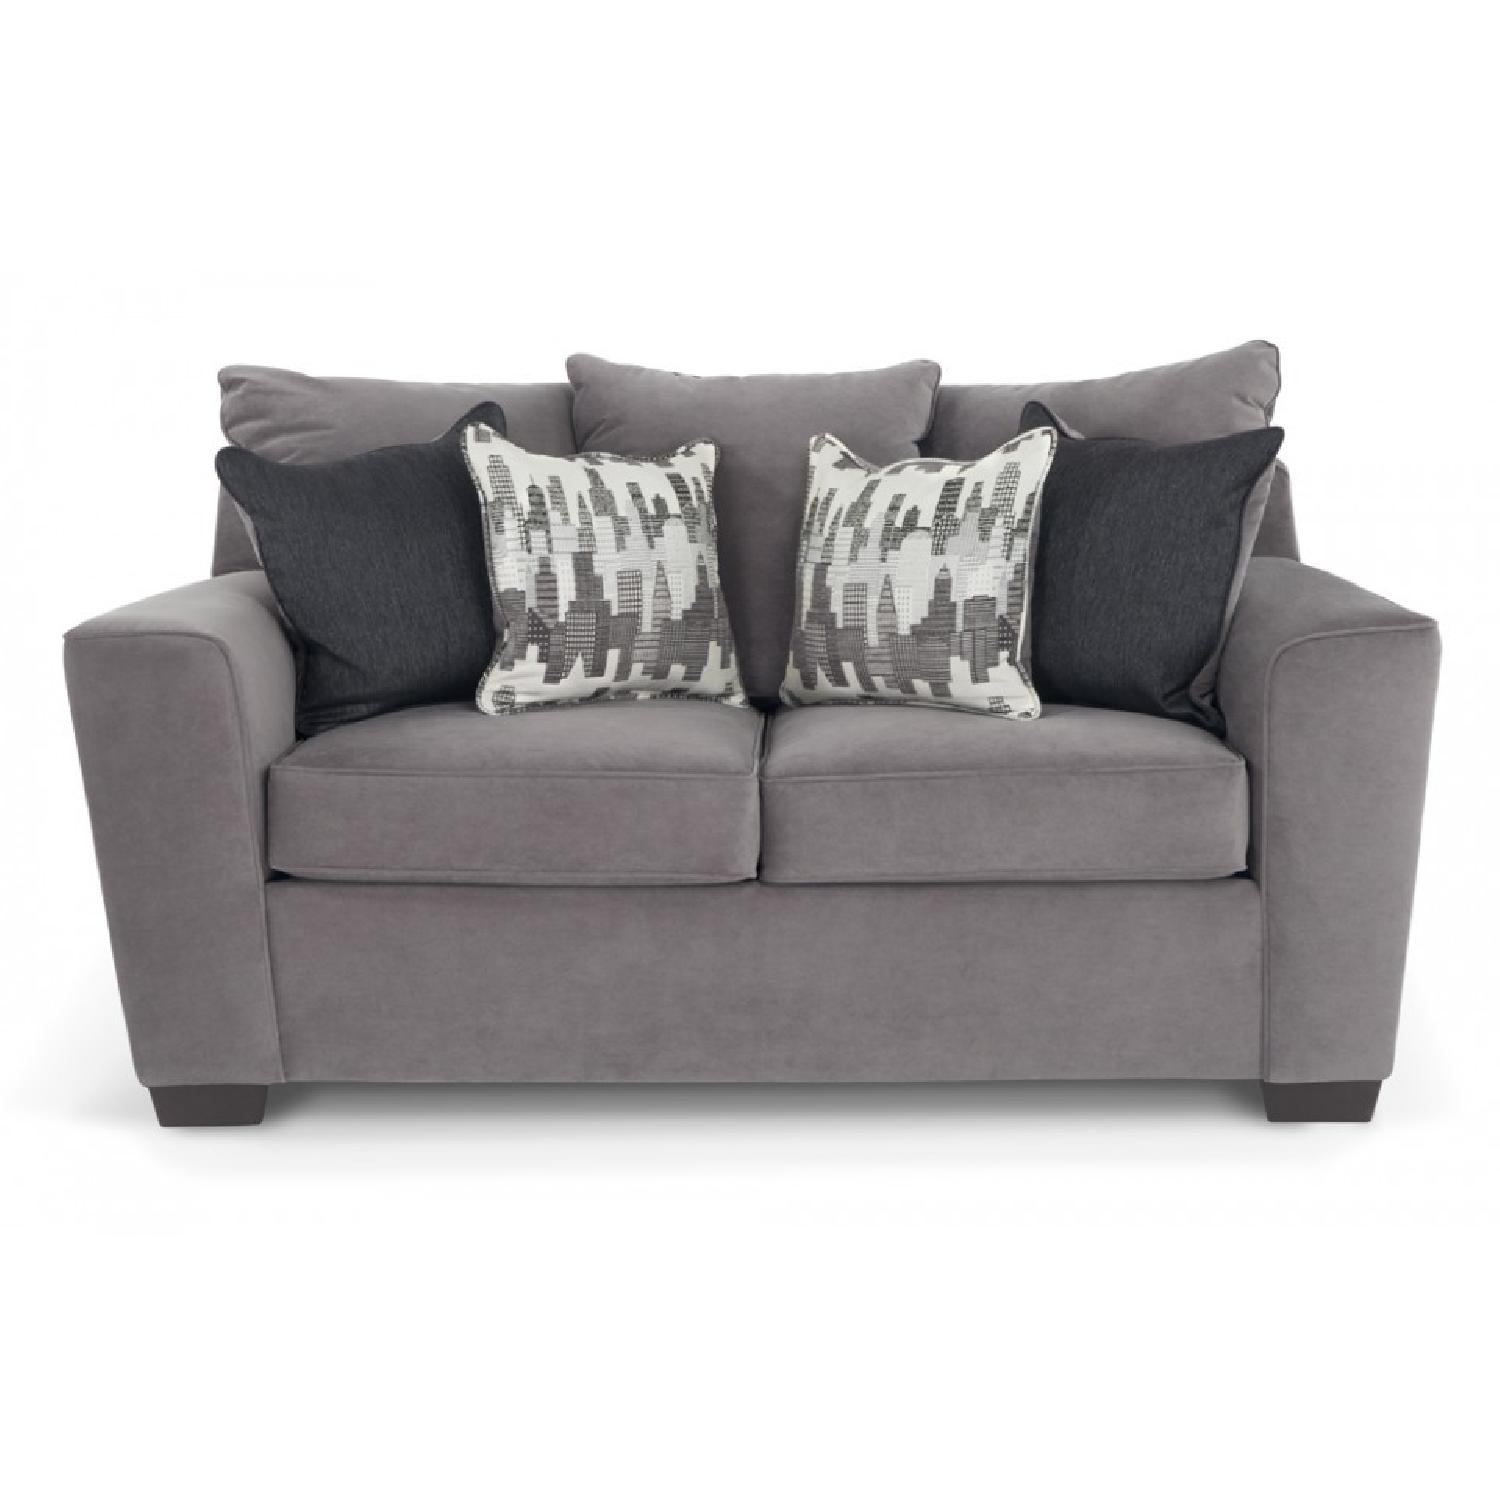 broyhill raf products storage raphael dealer locator furniture sofa bed contemporary item ahfa bobs sectional corner chaise with